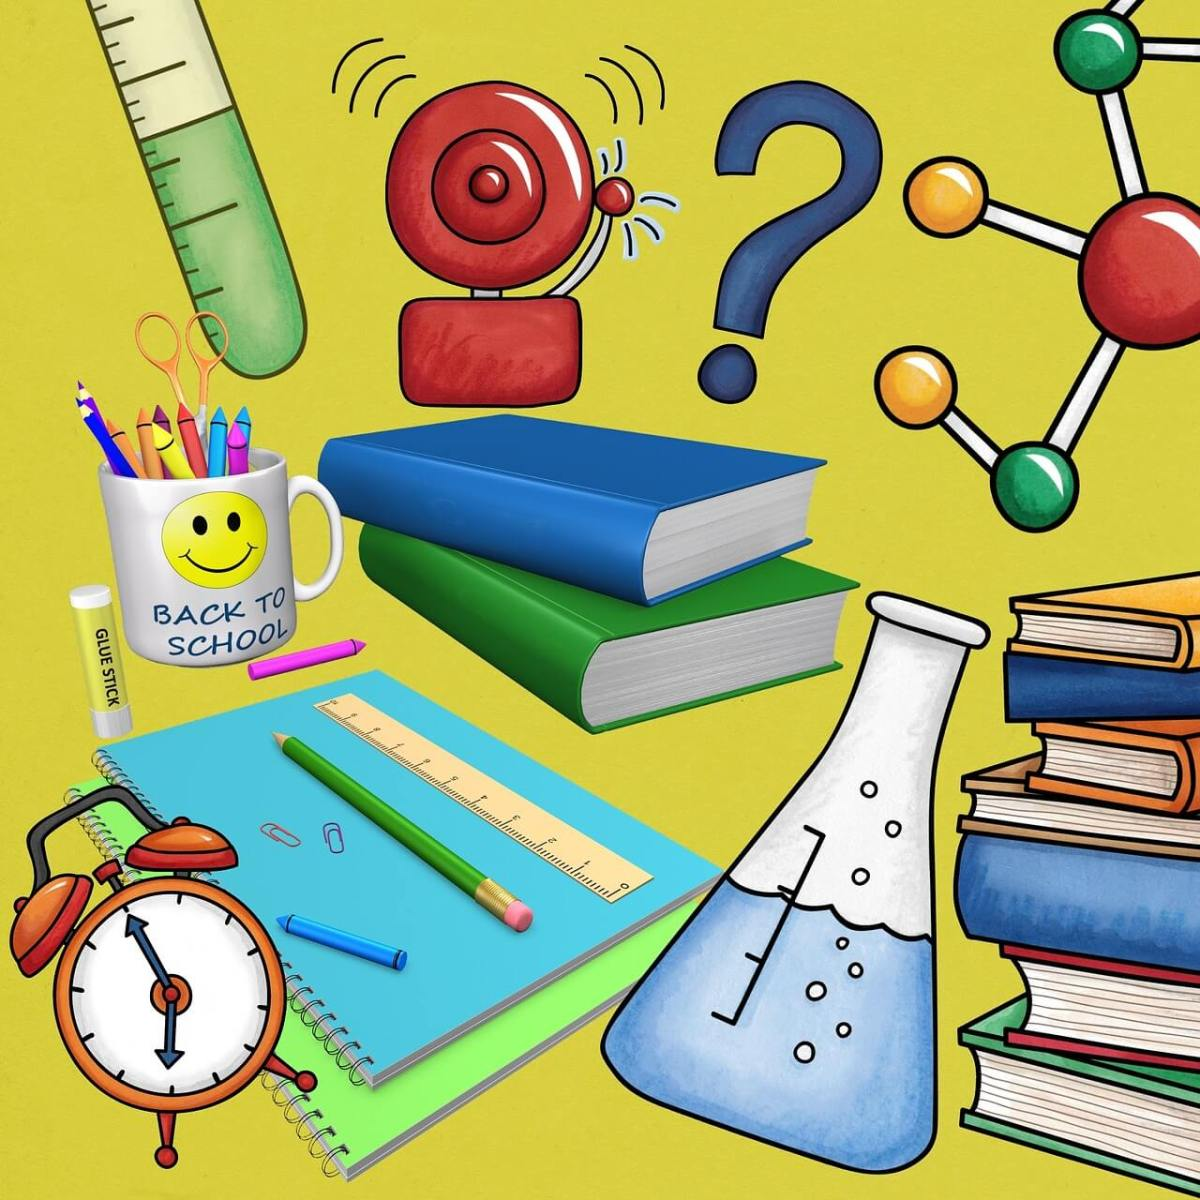 a beaker, books, alarm, back to school mug and other school objects floating around in a chaotic way